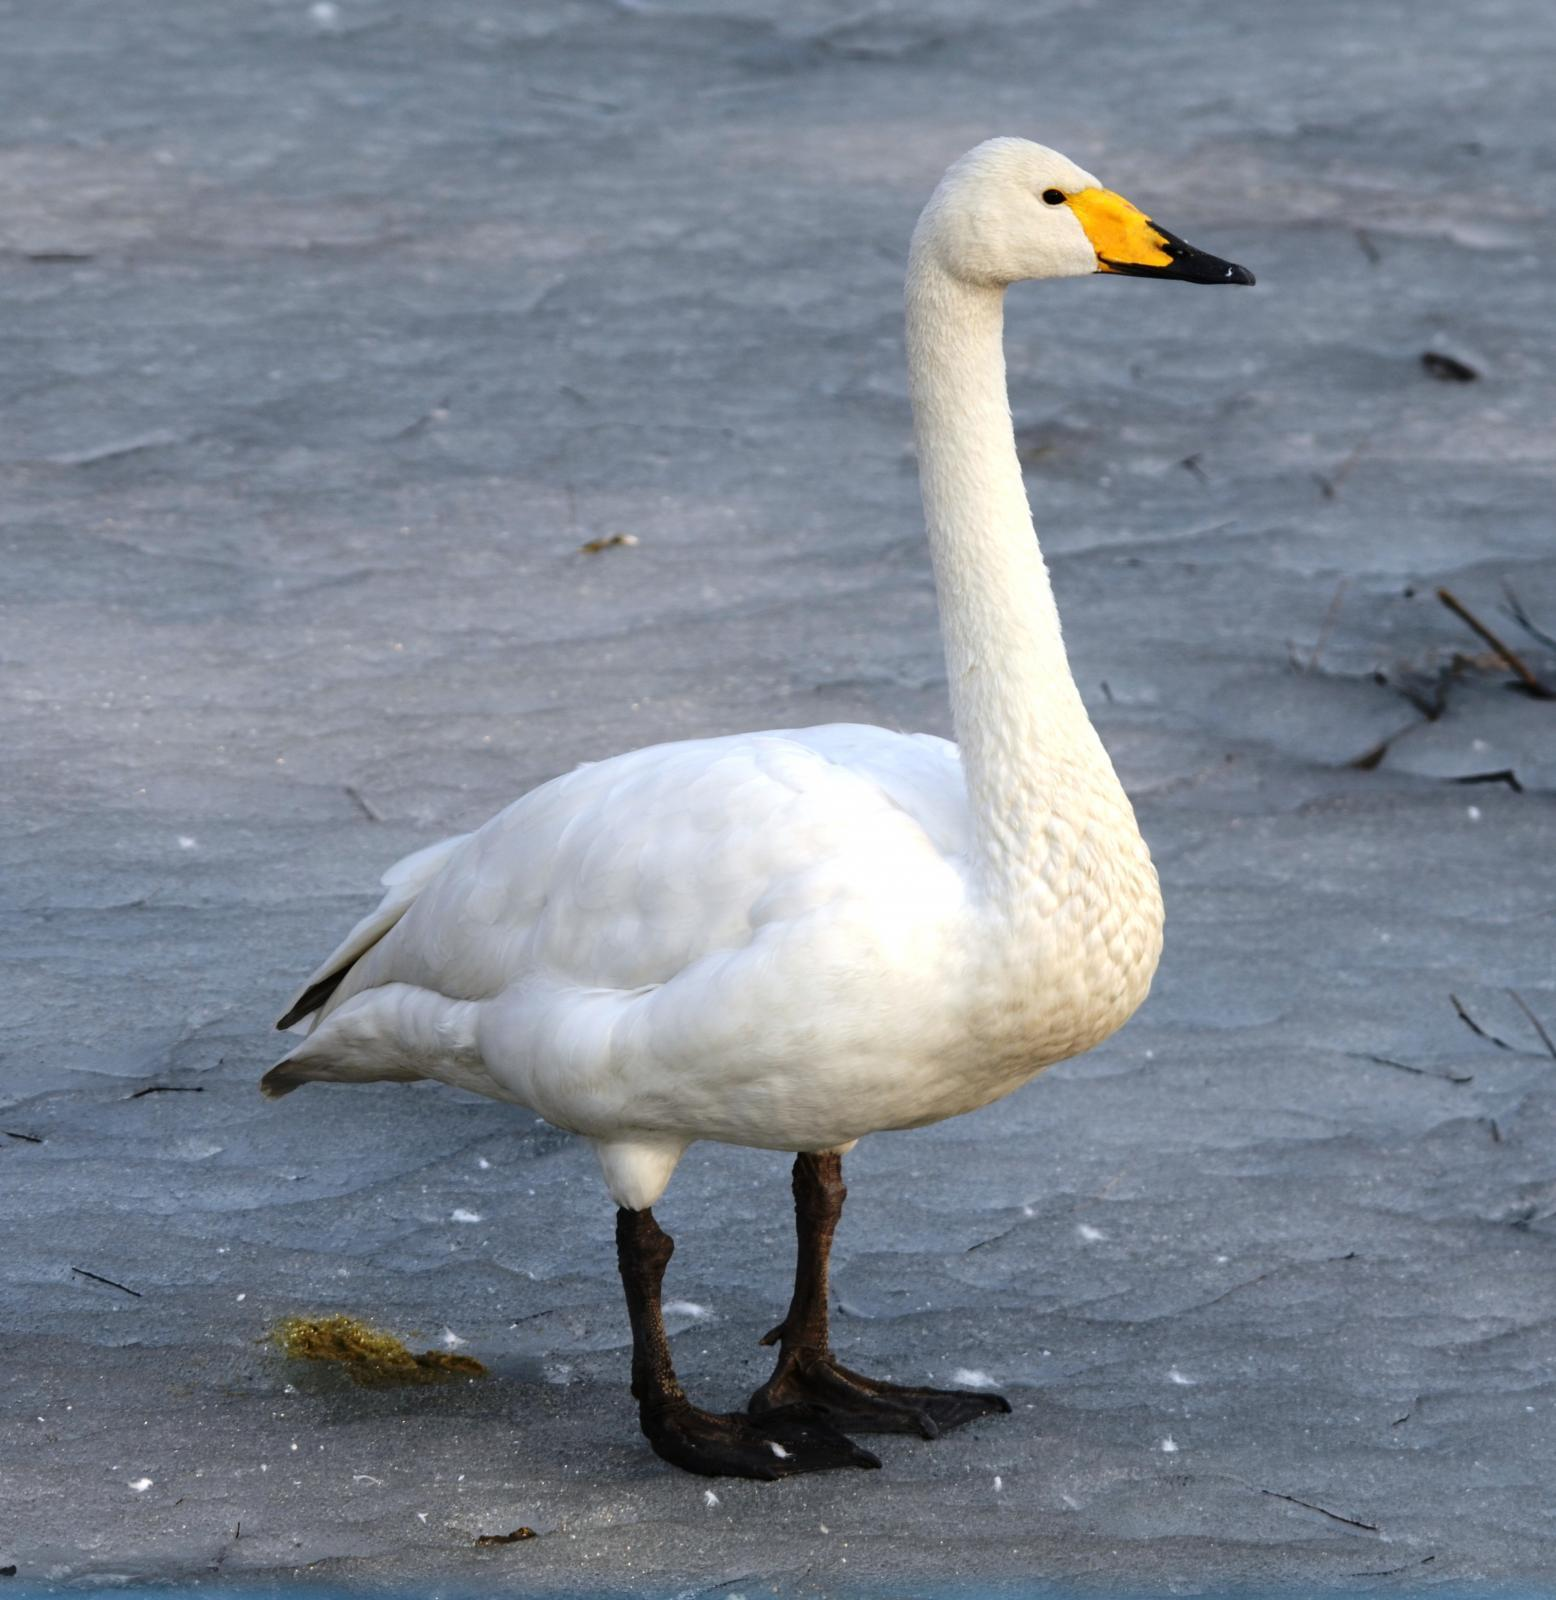 A total of 16 dead whooper swans were found at Fairnington